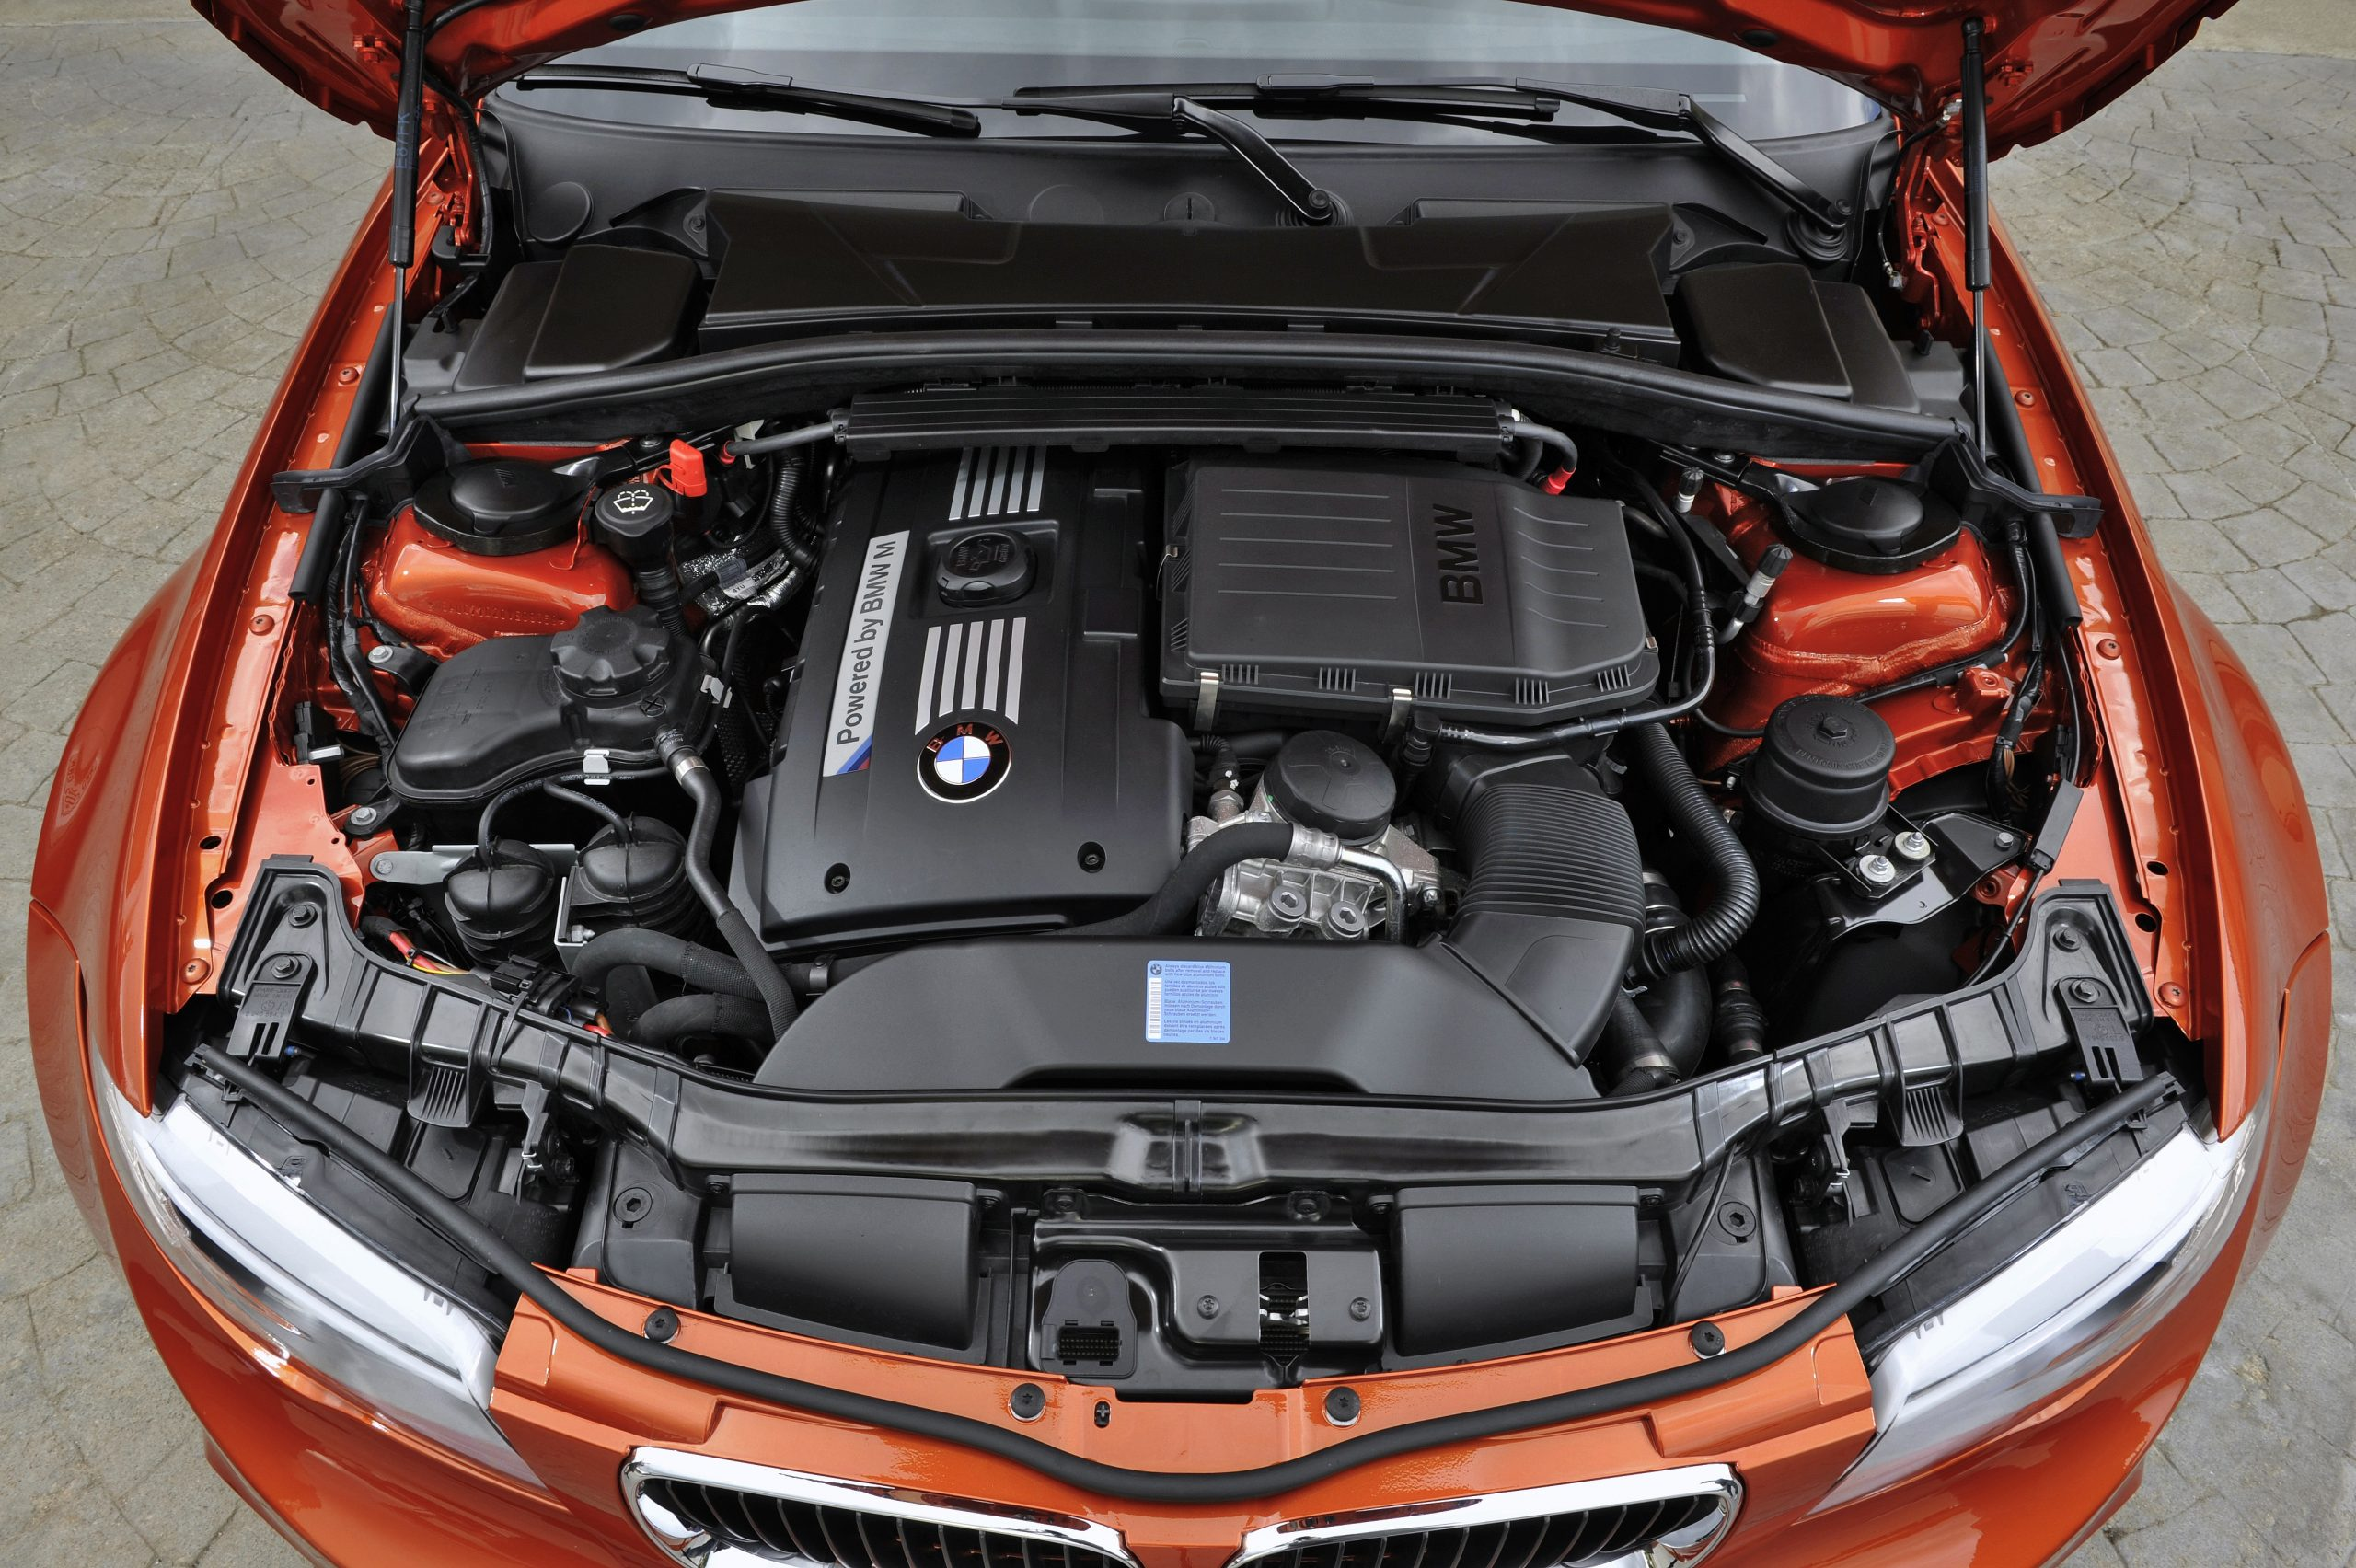 BMW 1 Series M Coupe engine bay